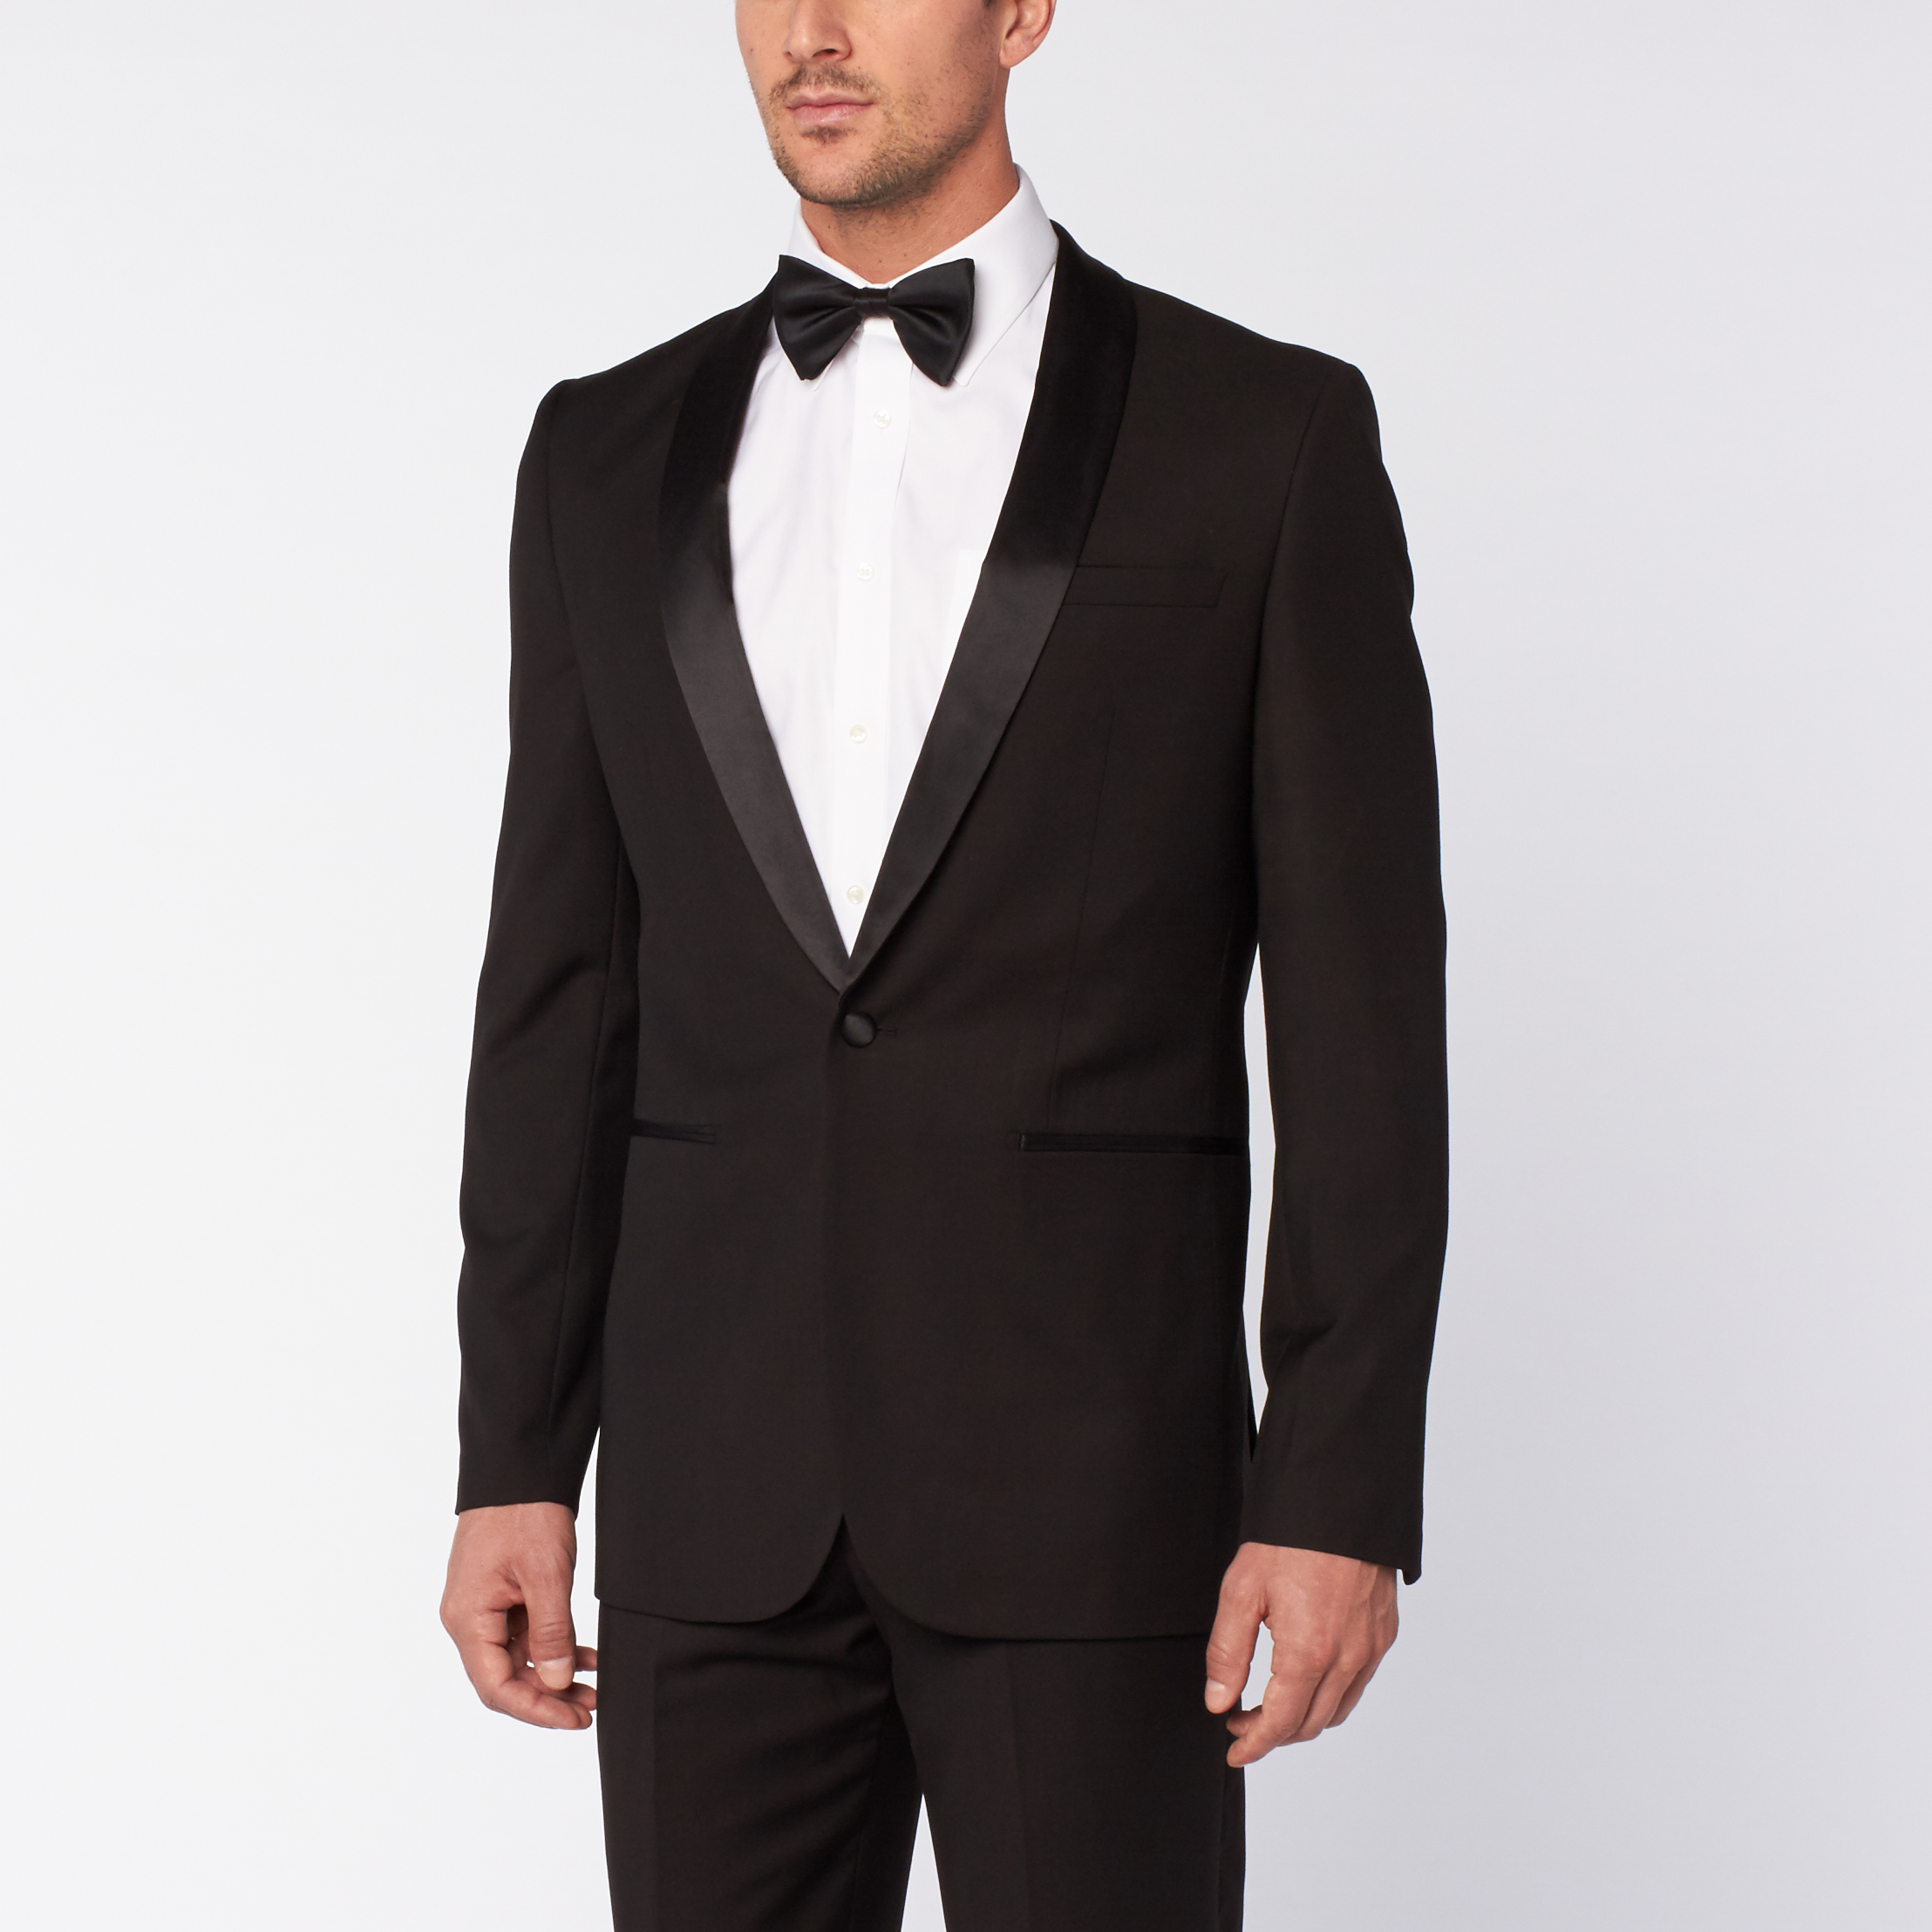 f12a9c10108b45 Runway Slim Fit Tuxedo // Black (US: 36S) - Braveman Suits - Touch ...